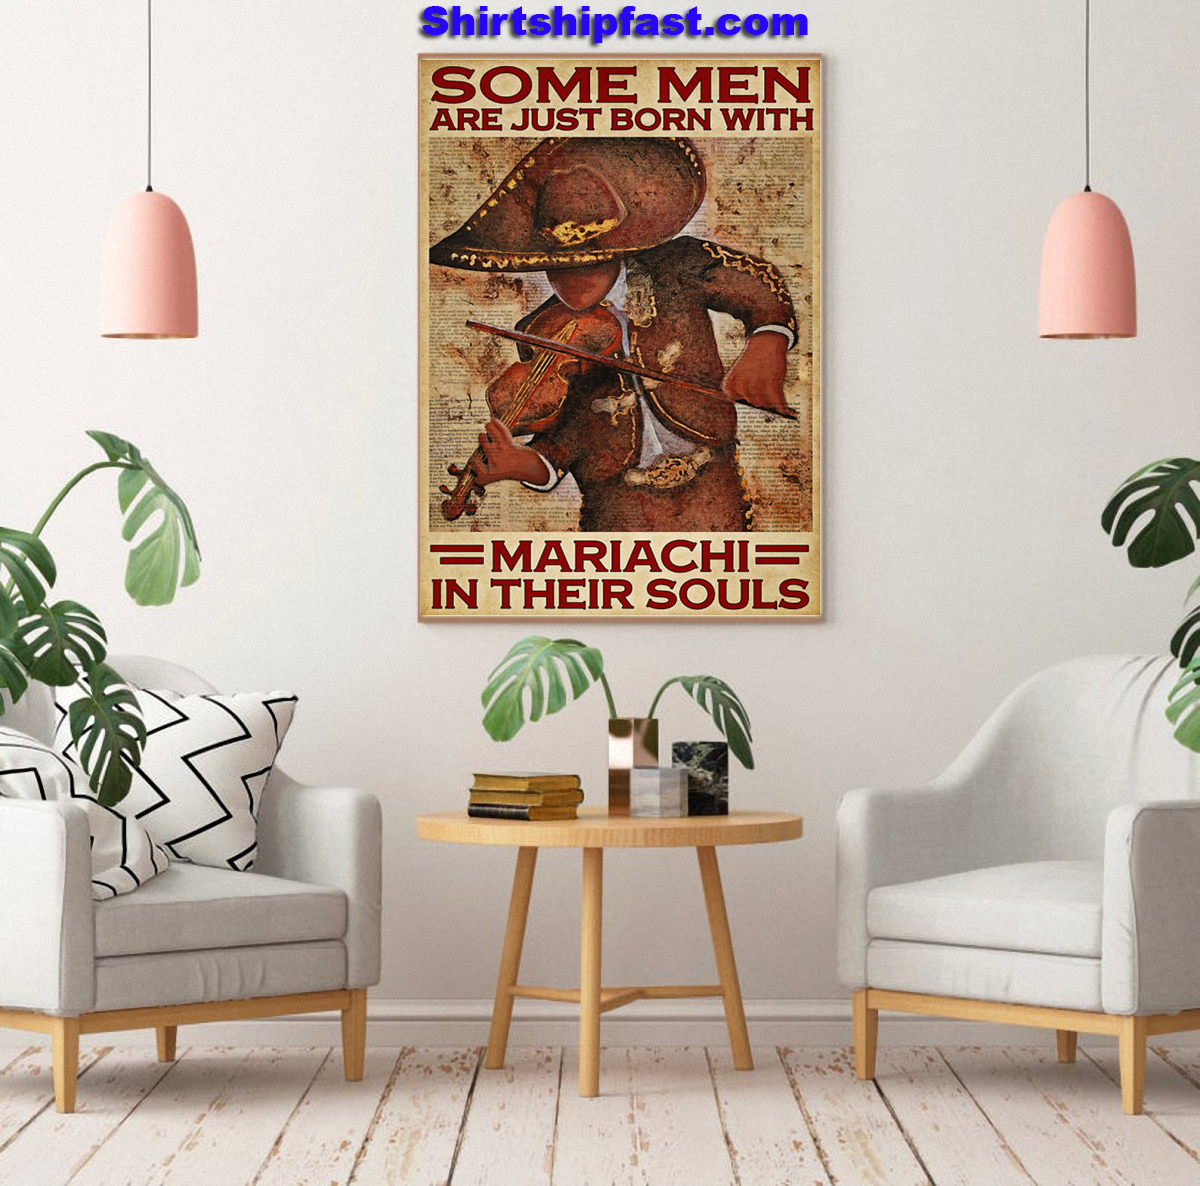 Some men are just born with mariachi in their souls poster - Picture 2